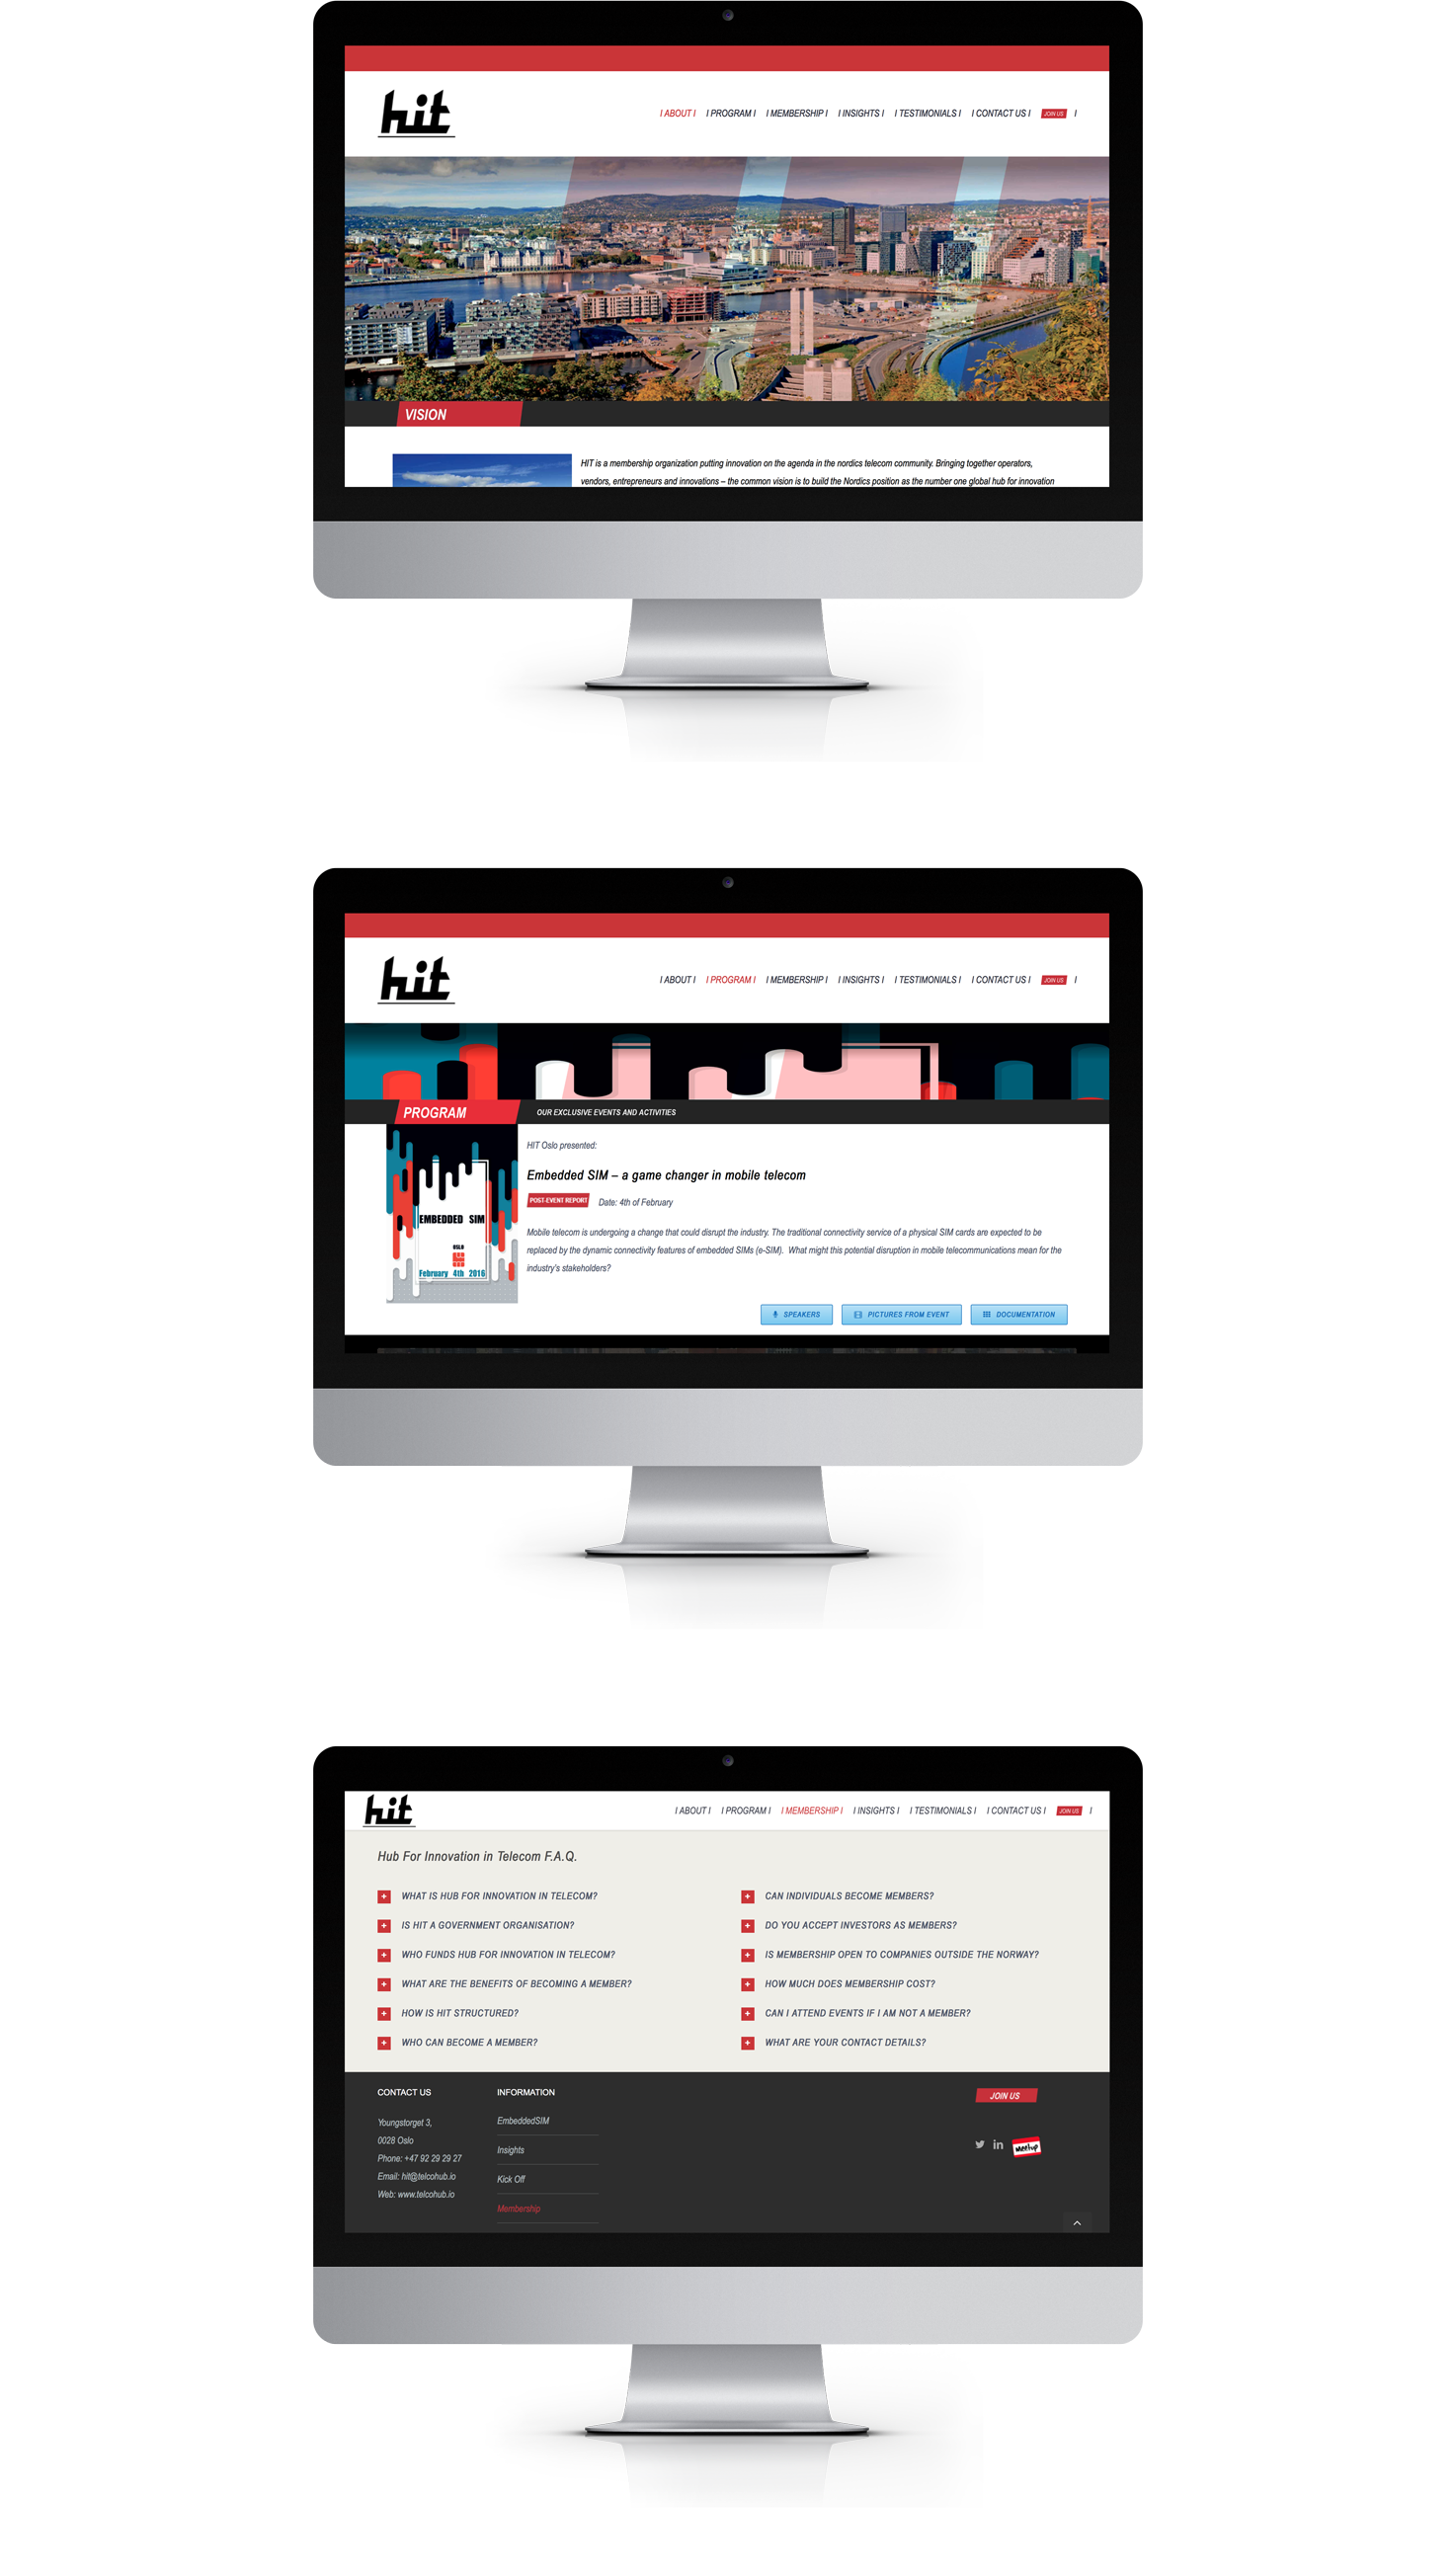 Imac mockup, webside mockup, webside design mockup, hub for innovation in telecom